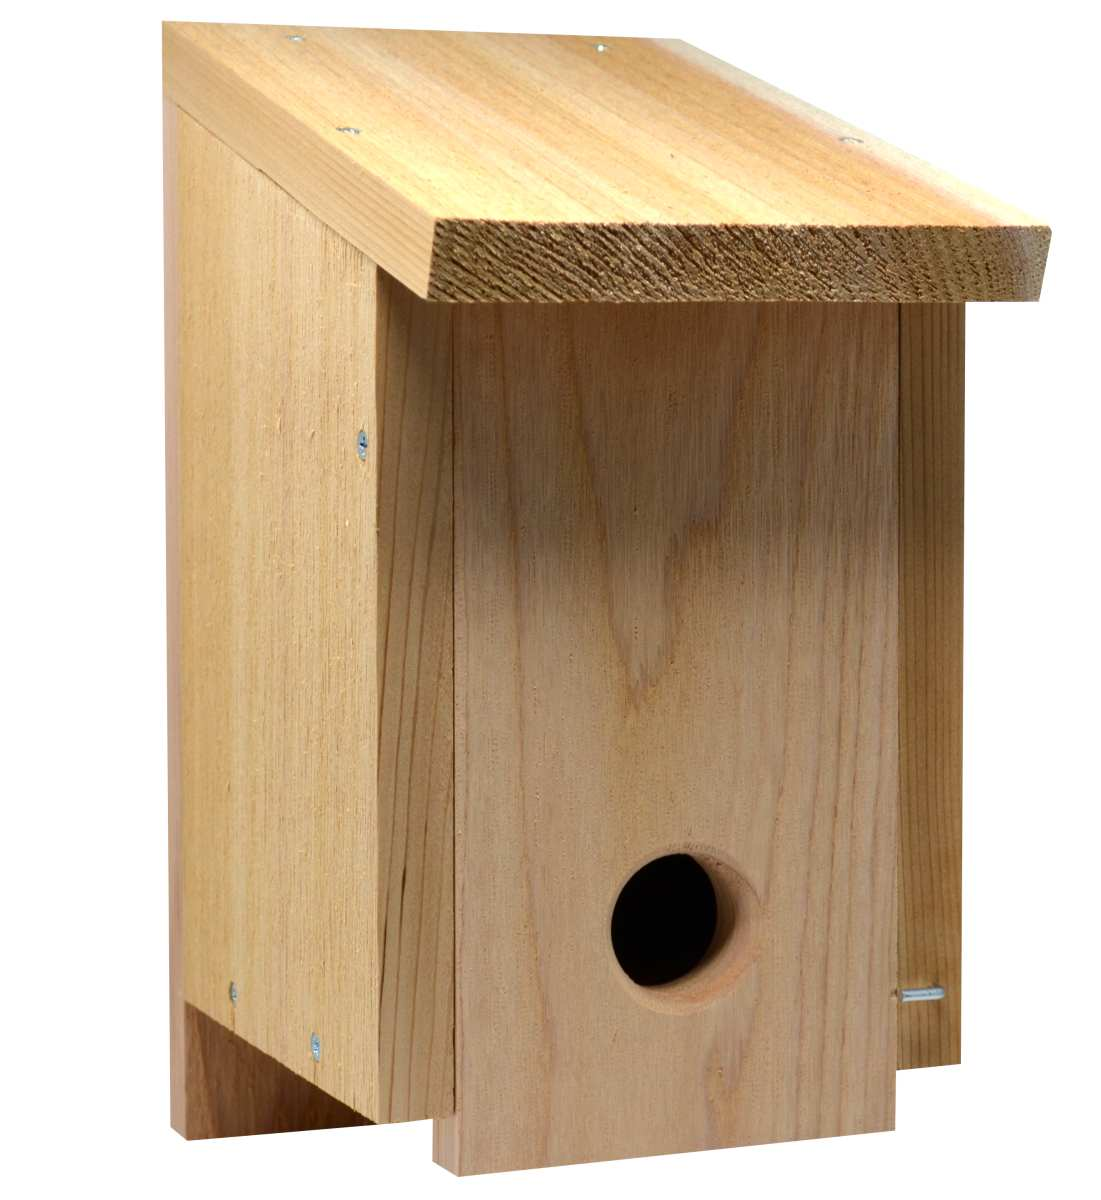 Songbird Convertible Roosting House